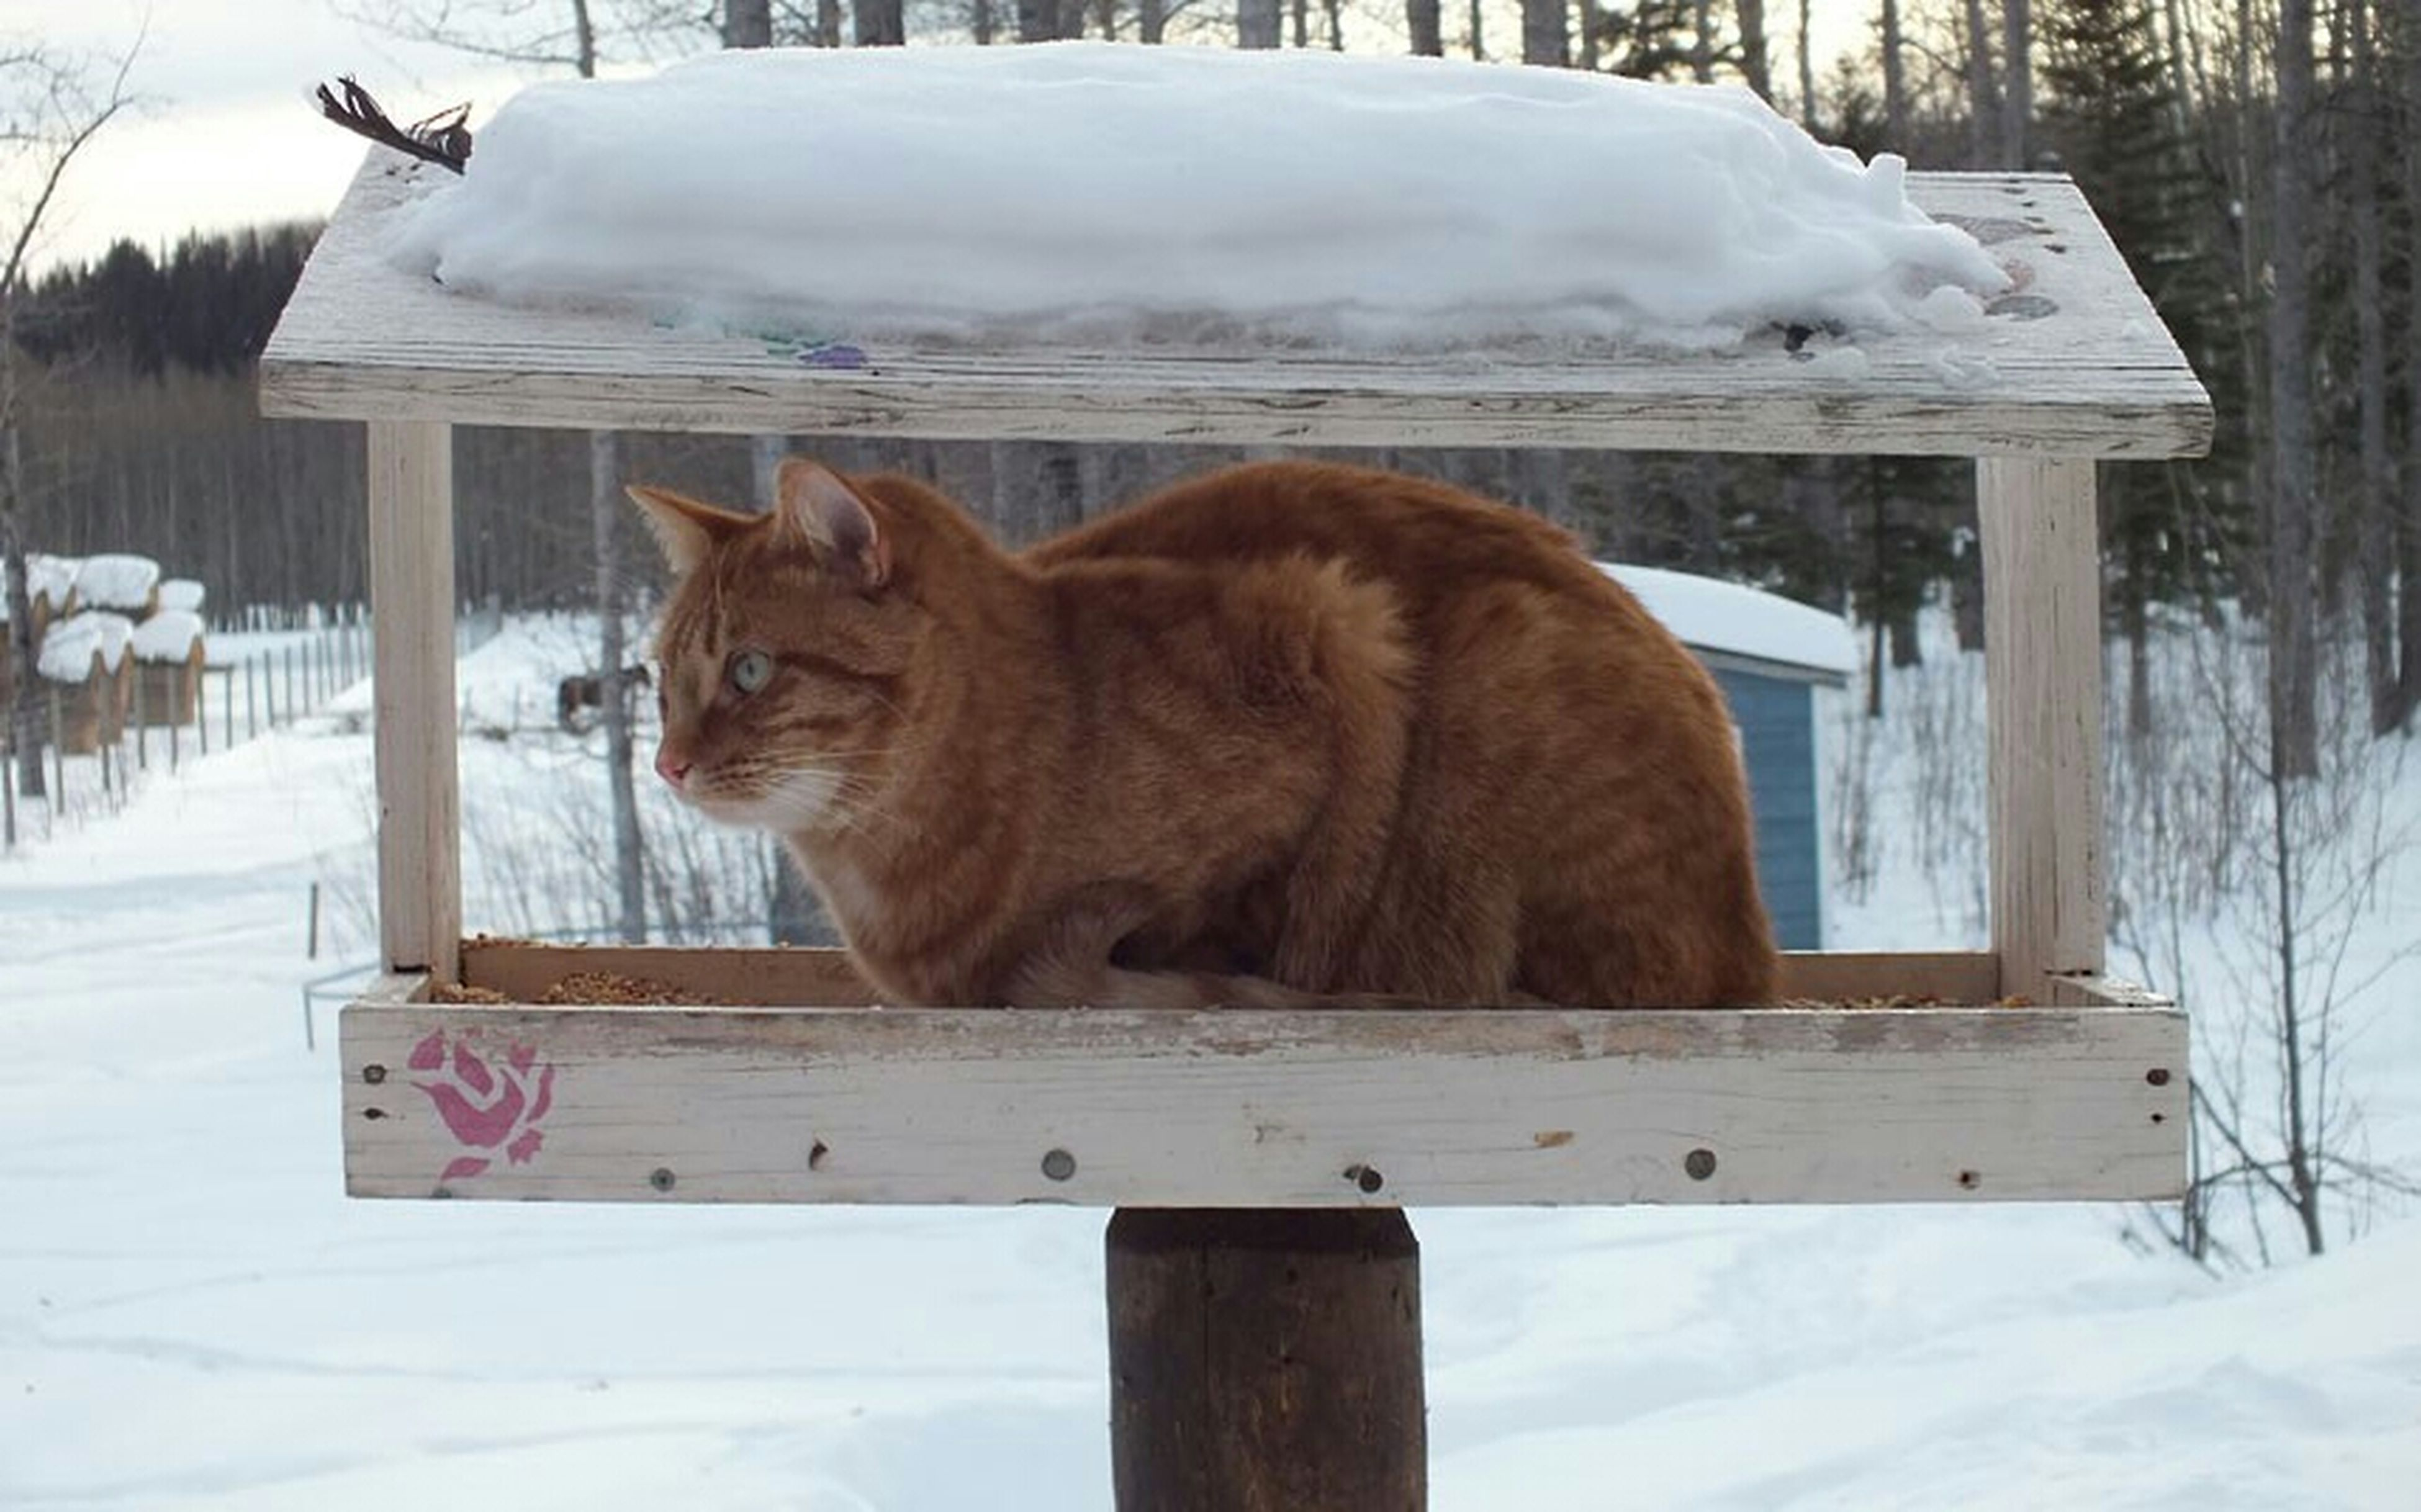 animal themes, domestic animals, mammal, snow, winter, cold temperature, one animal, wood - material, season, pets, white color, weather, fence, relaxation, nature, wooden, field, domestic cat, livestock, no people